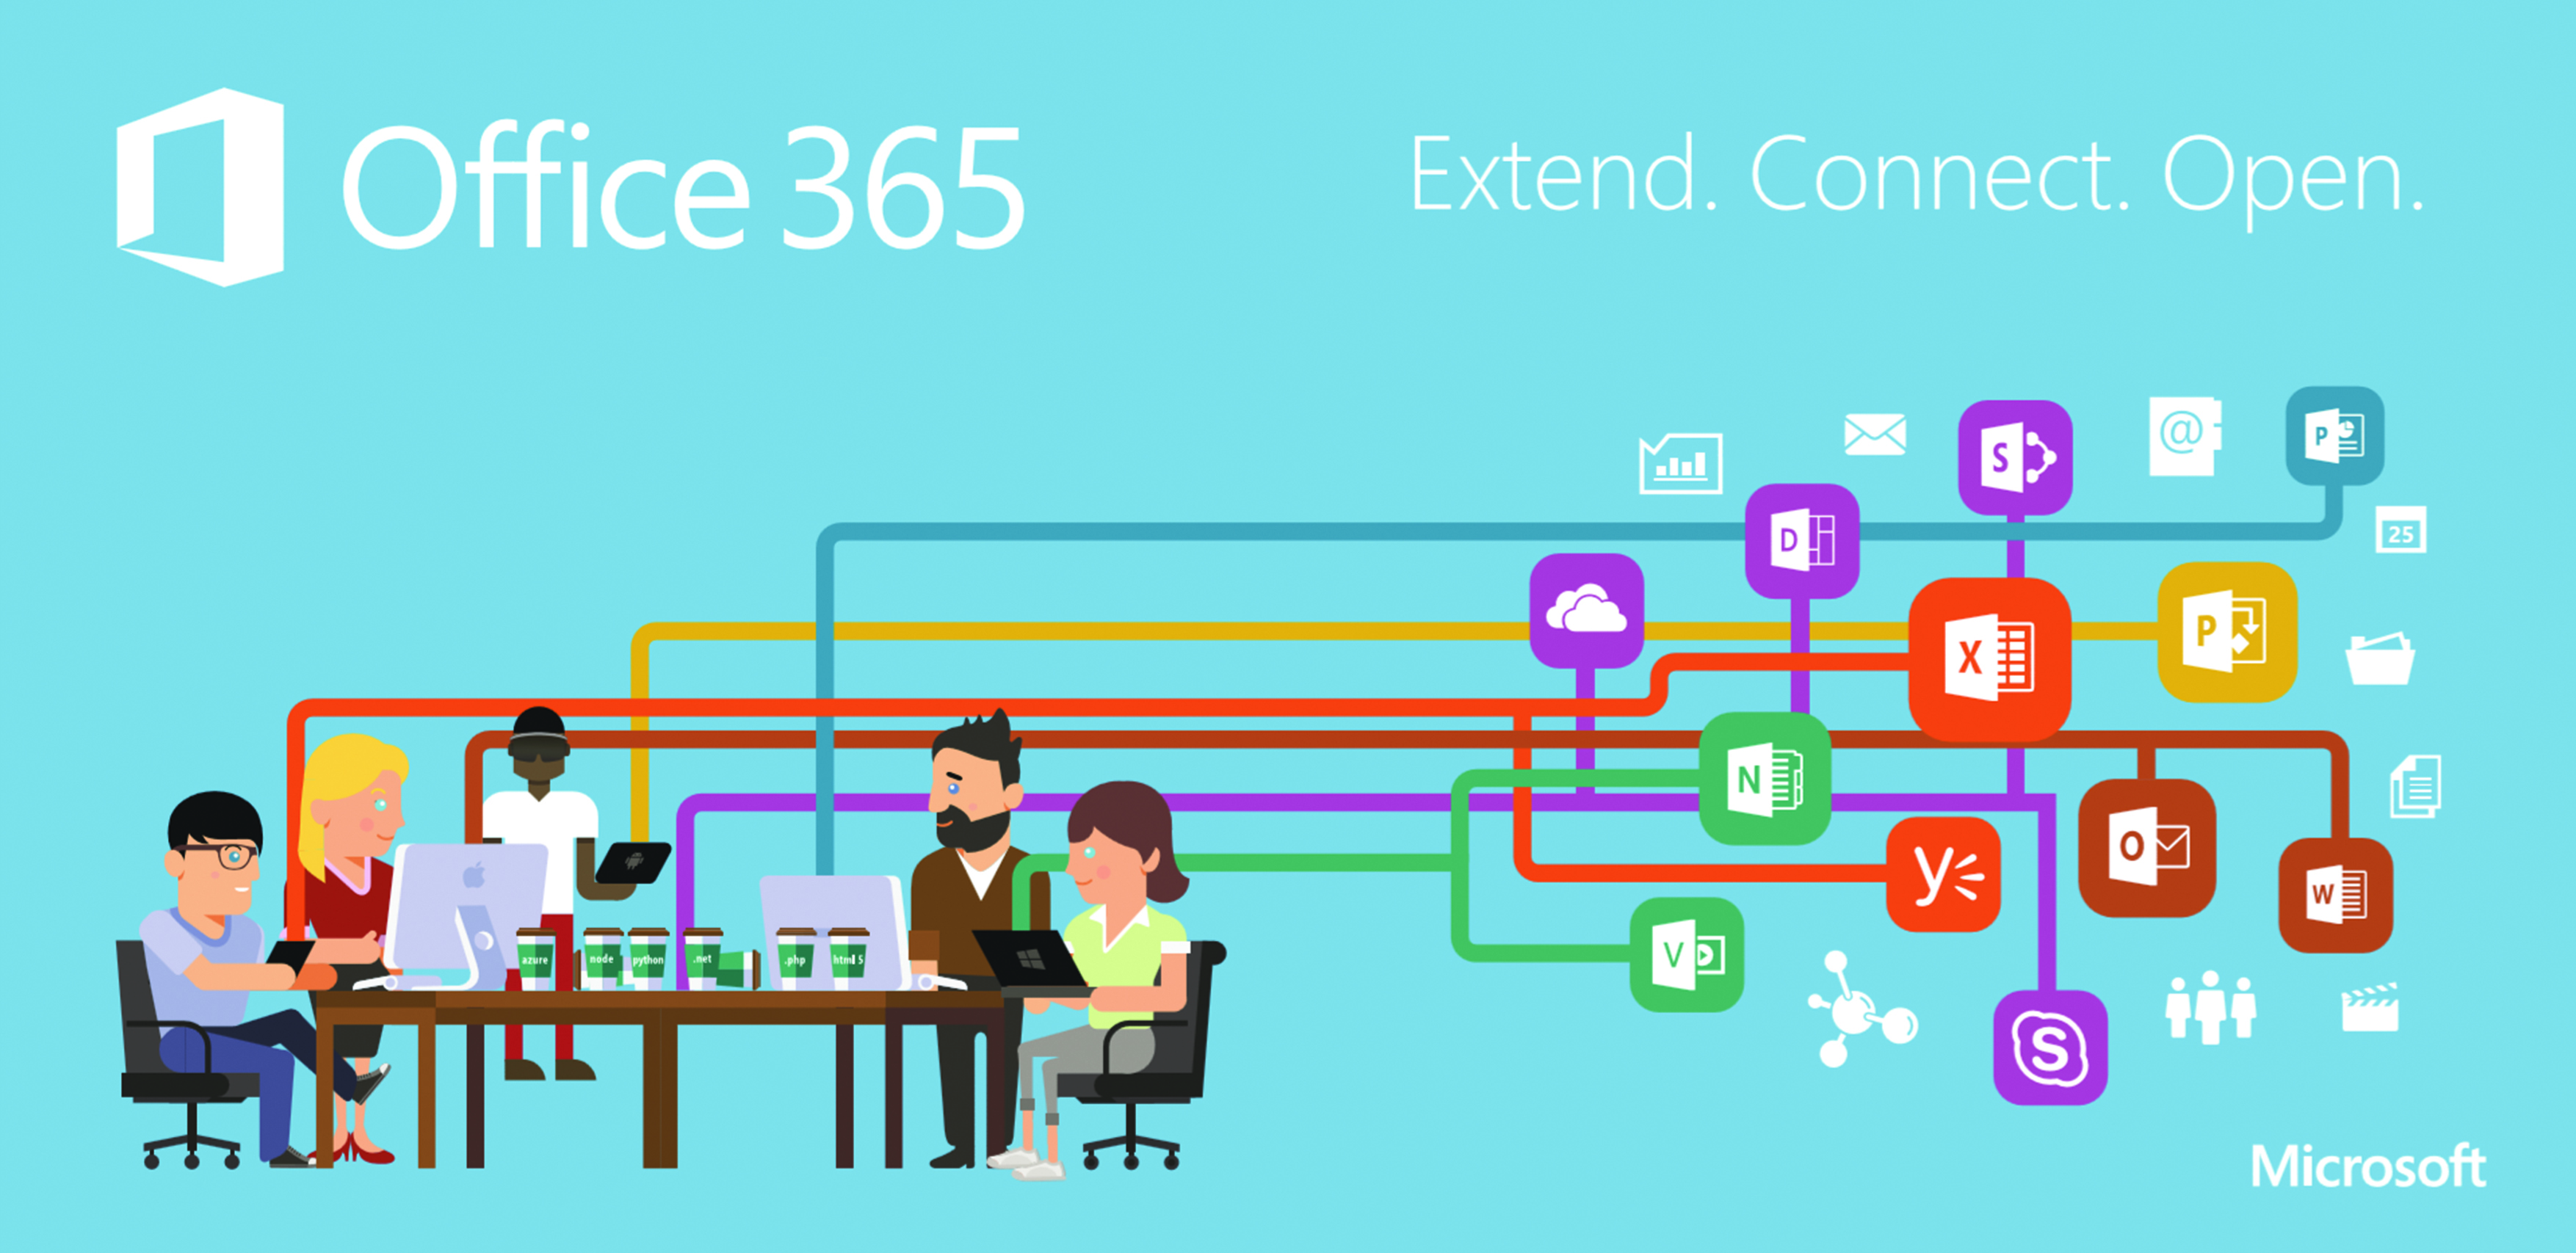 How-to: Aceda as Aplicações internas através do Office 365